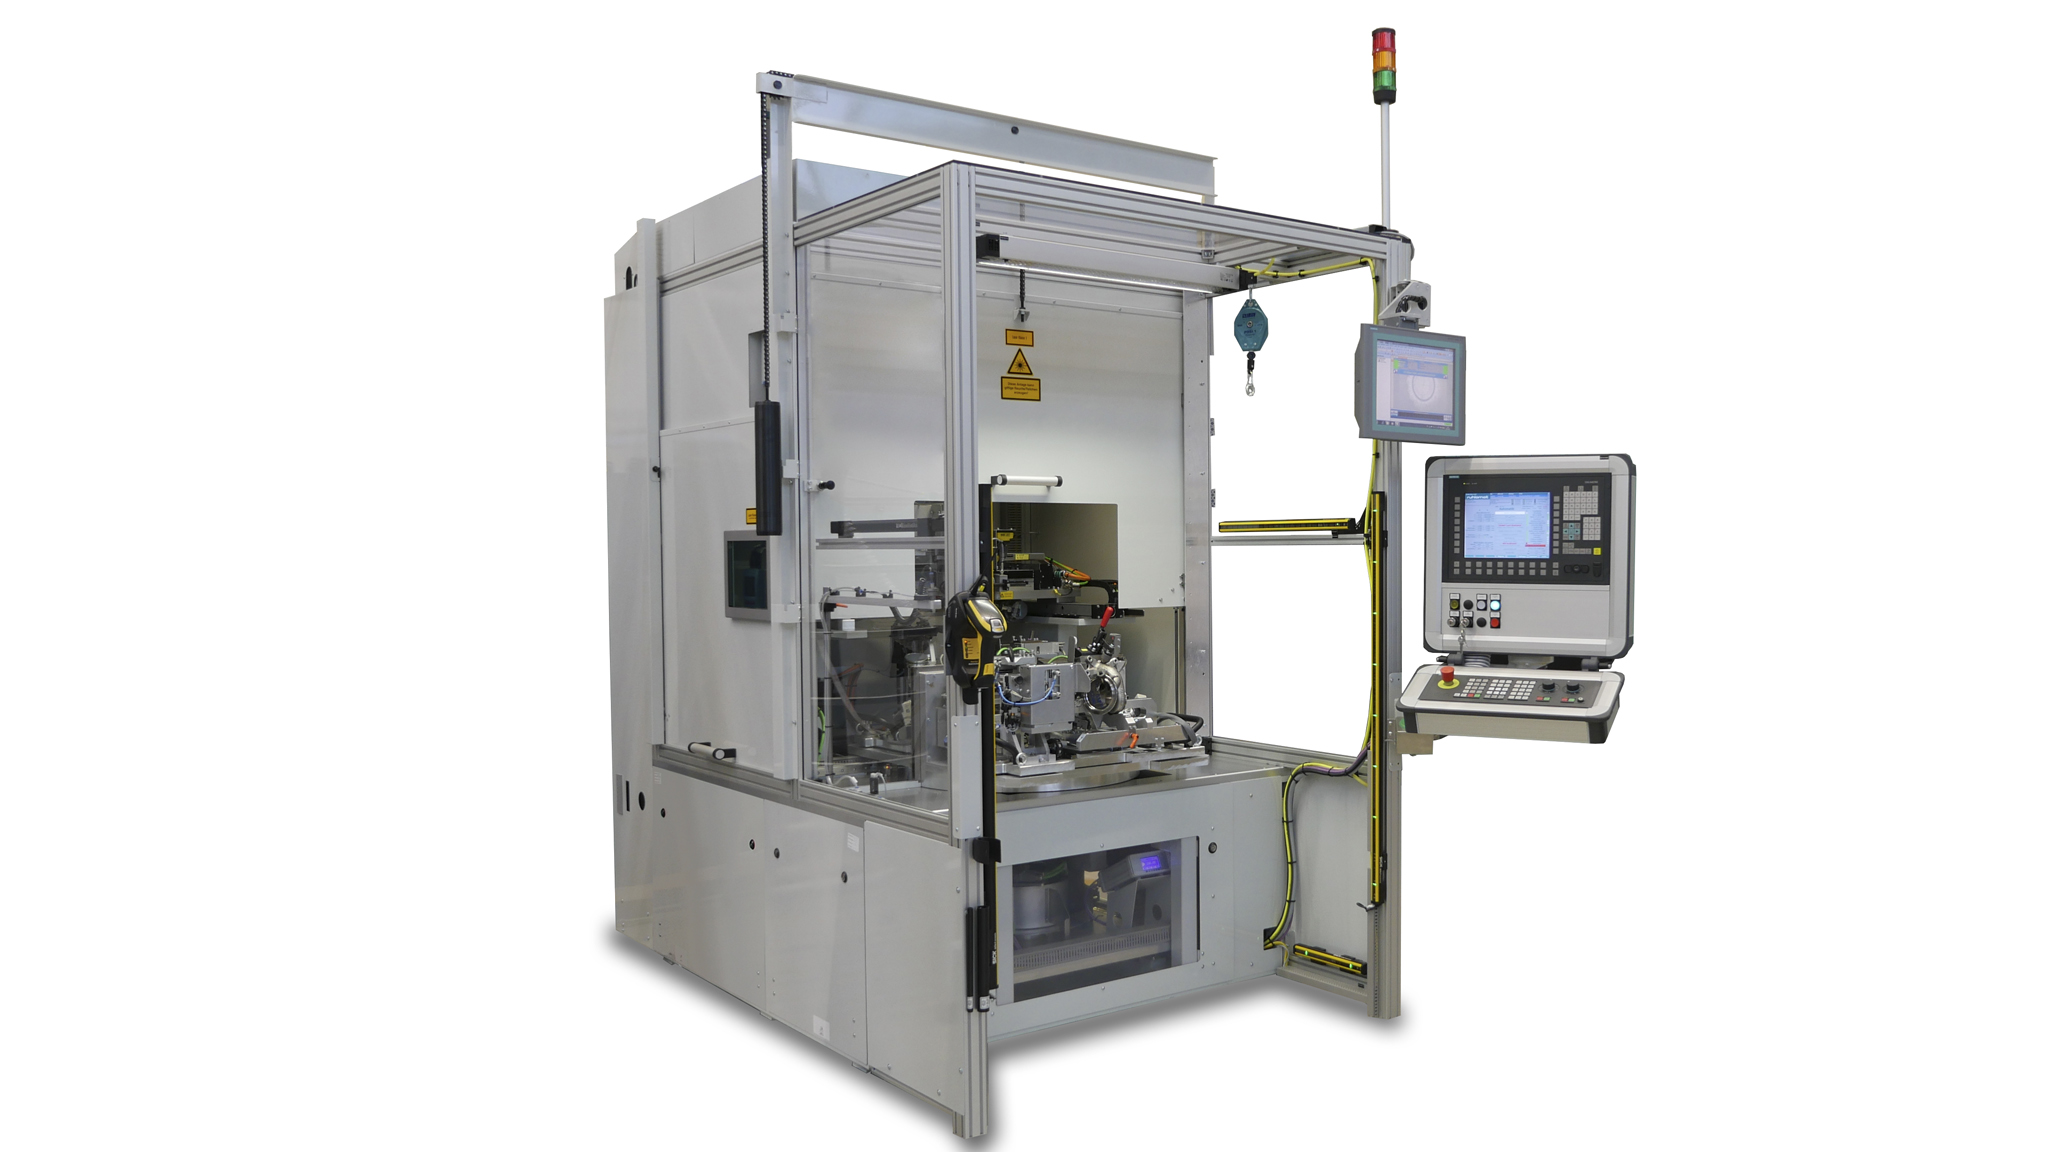 Stations for laser welding of plastic parts